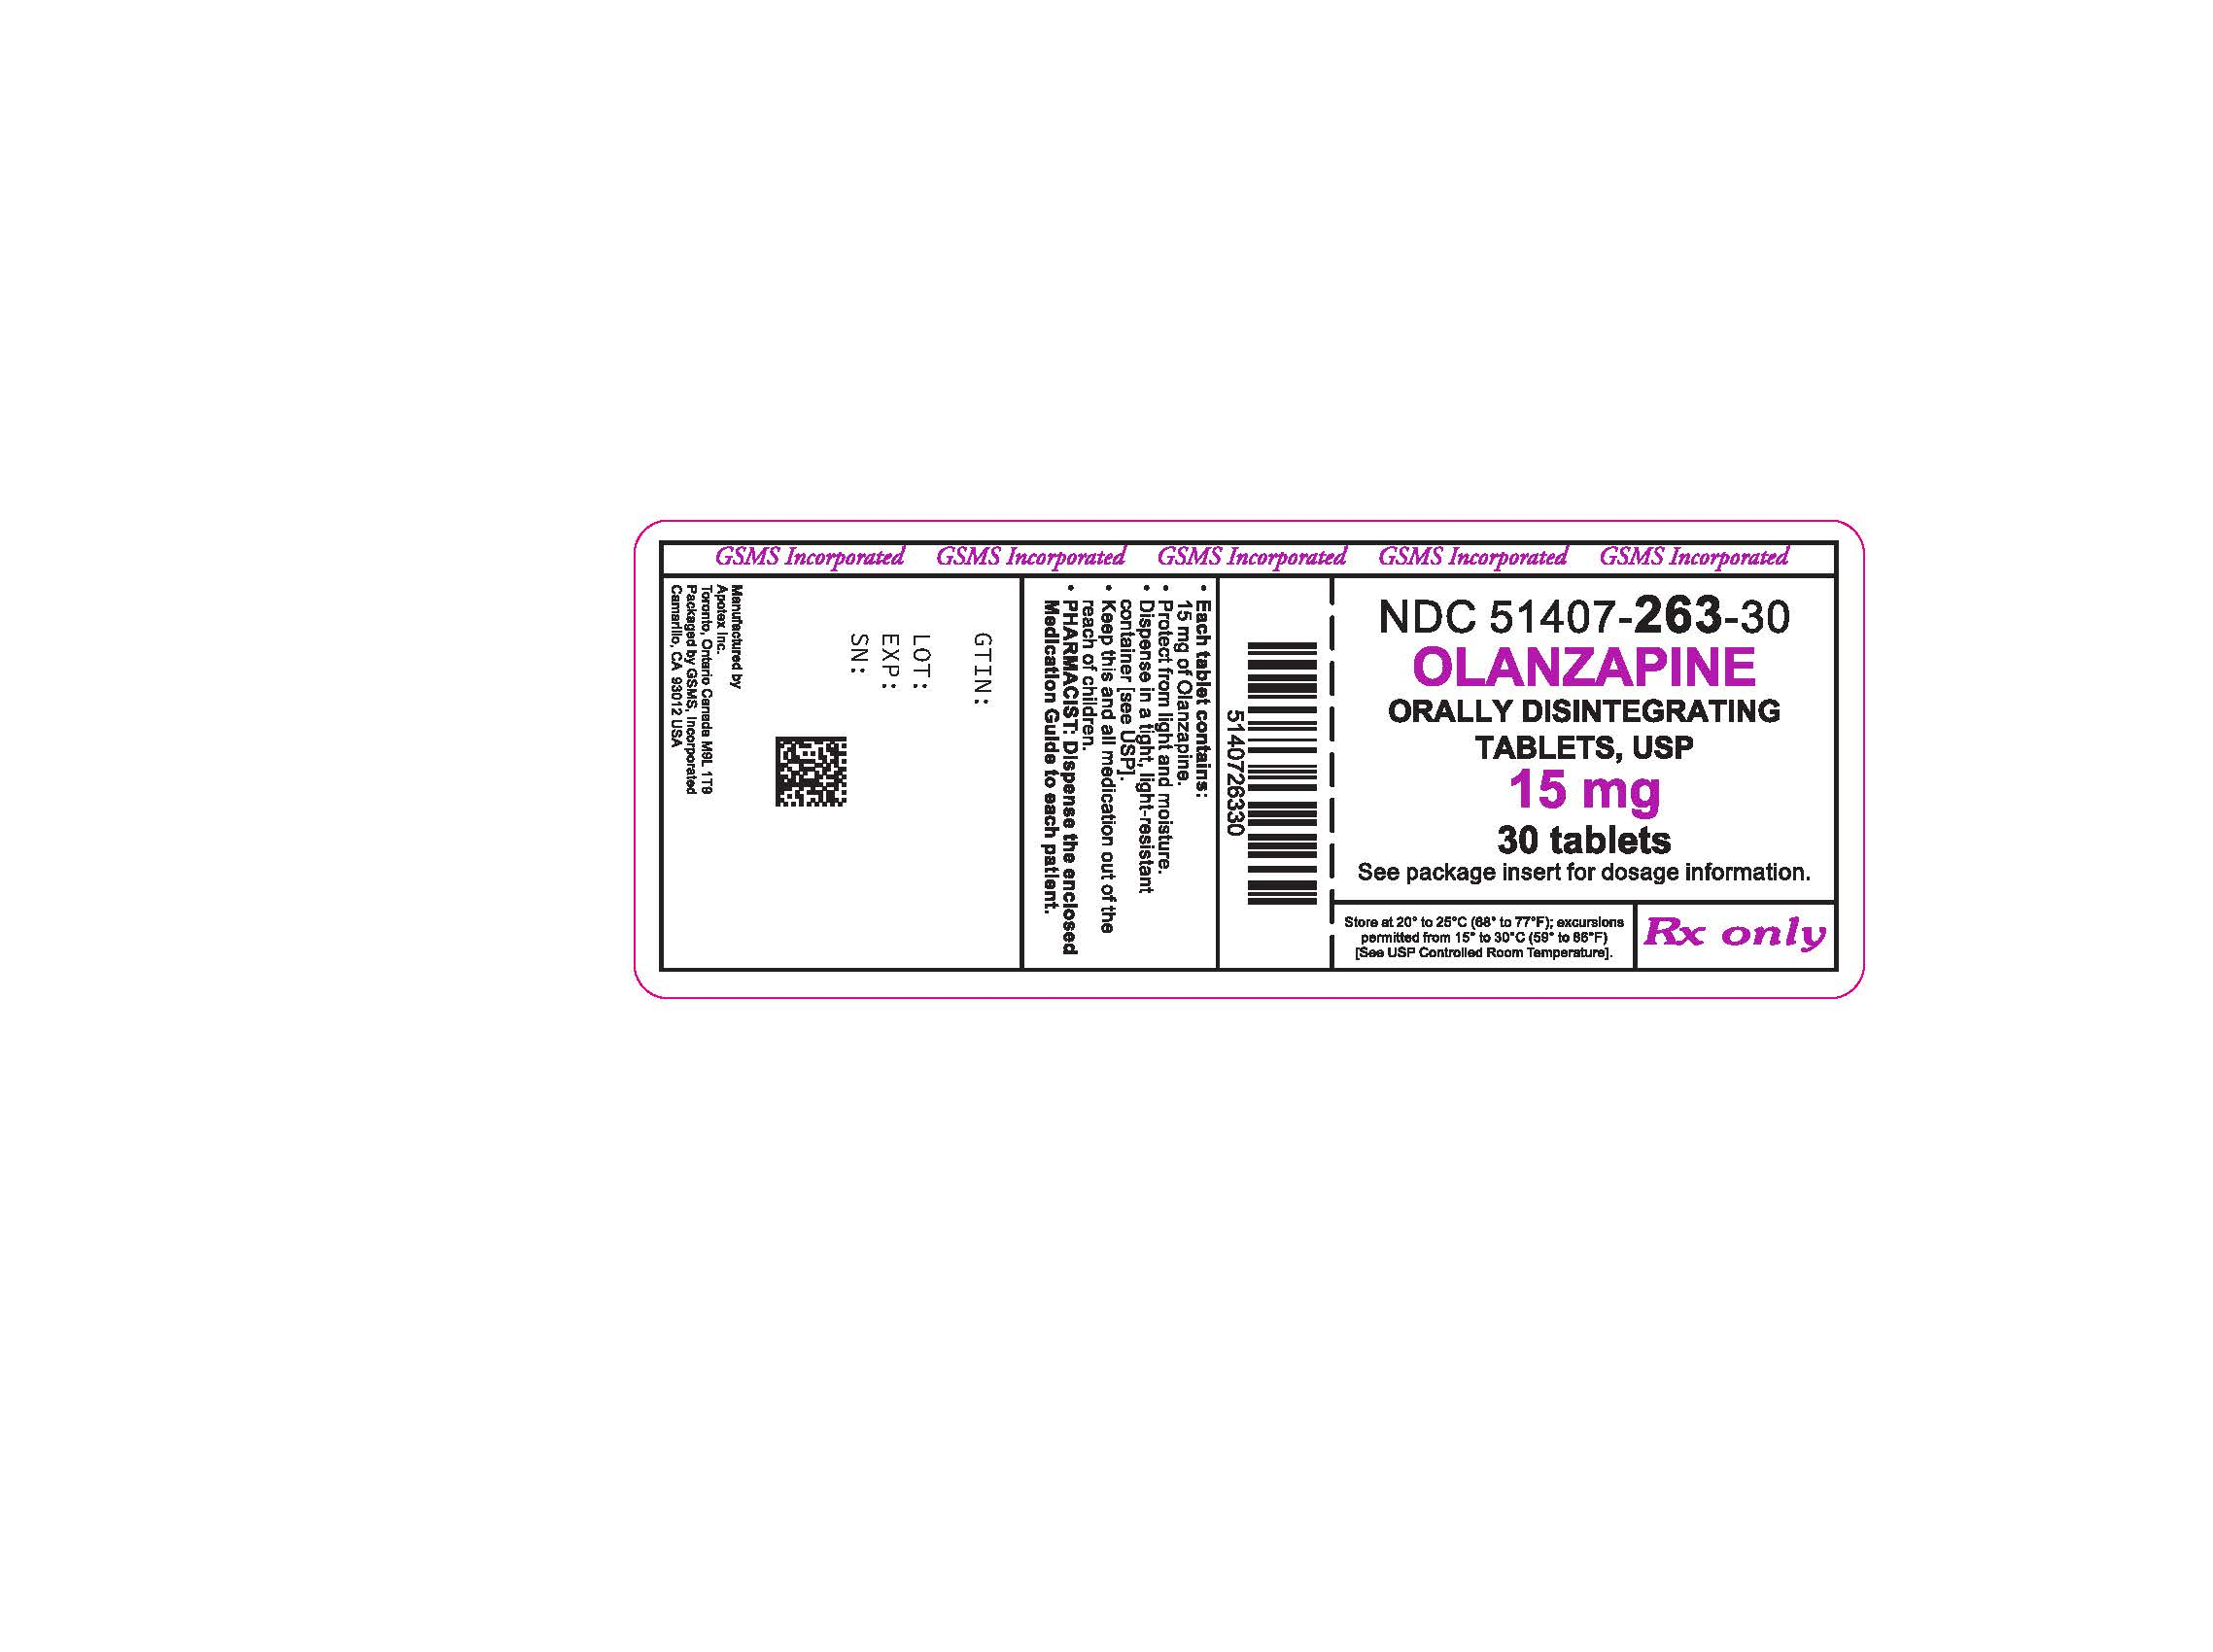 51407-263-30LB - OLANZAPINE 15 MG ODT.jpg